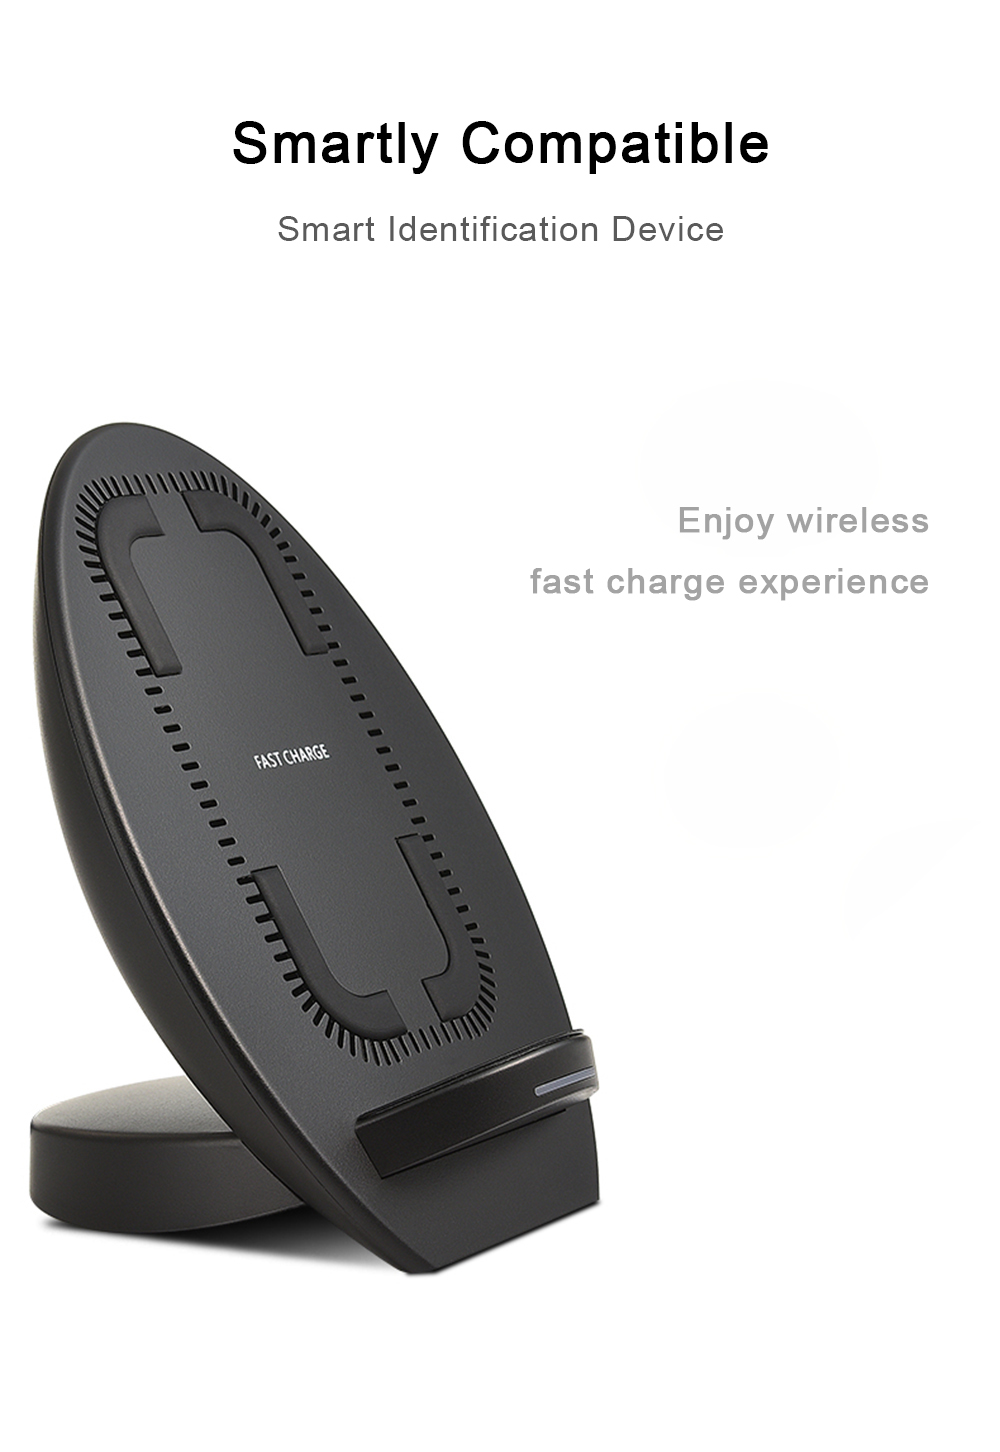 JK68-Qi-Wireless-Charger-Station-For-iPhone-X-8-Plus-Samsung-Note-8-S8-Plus-S7-Edge-Wireless-Quick-Charging-Dock-Stand-Charger- (6)